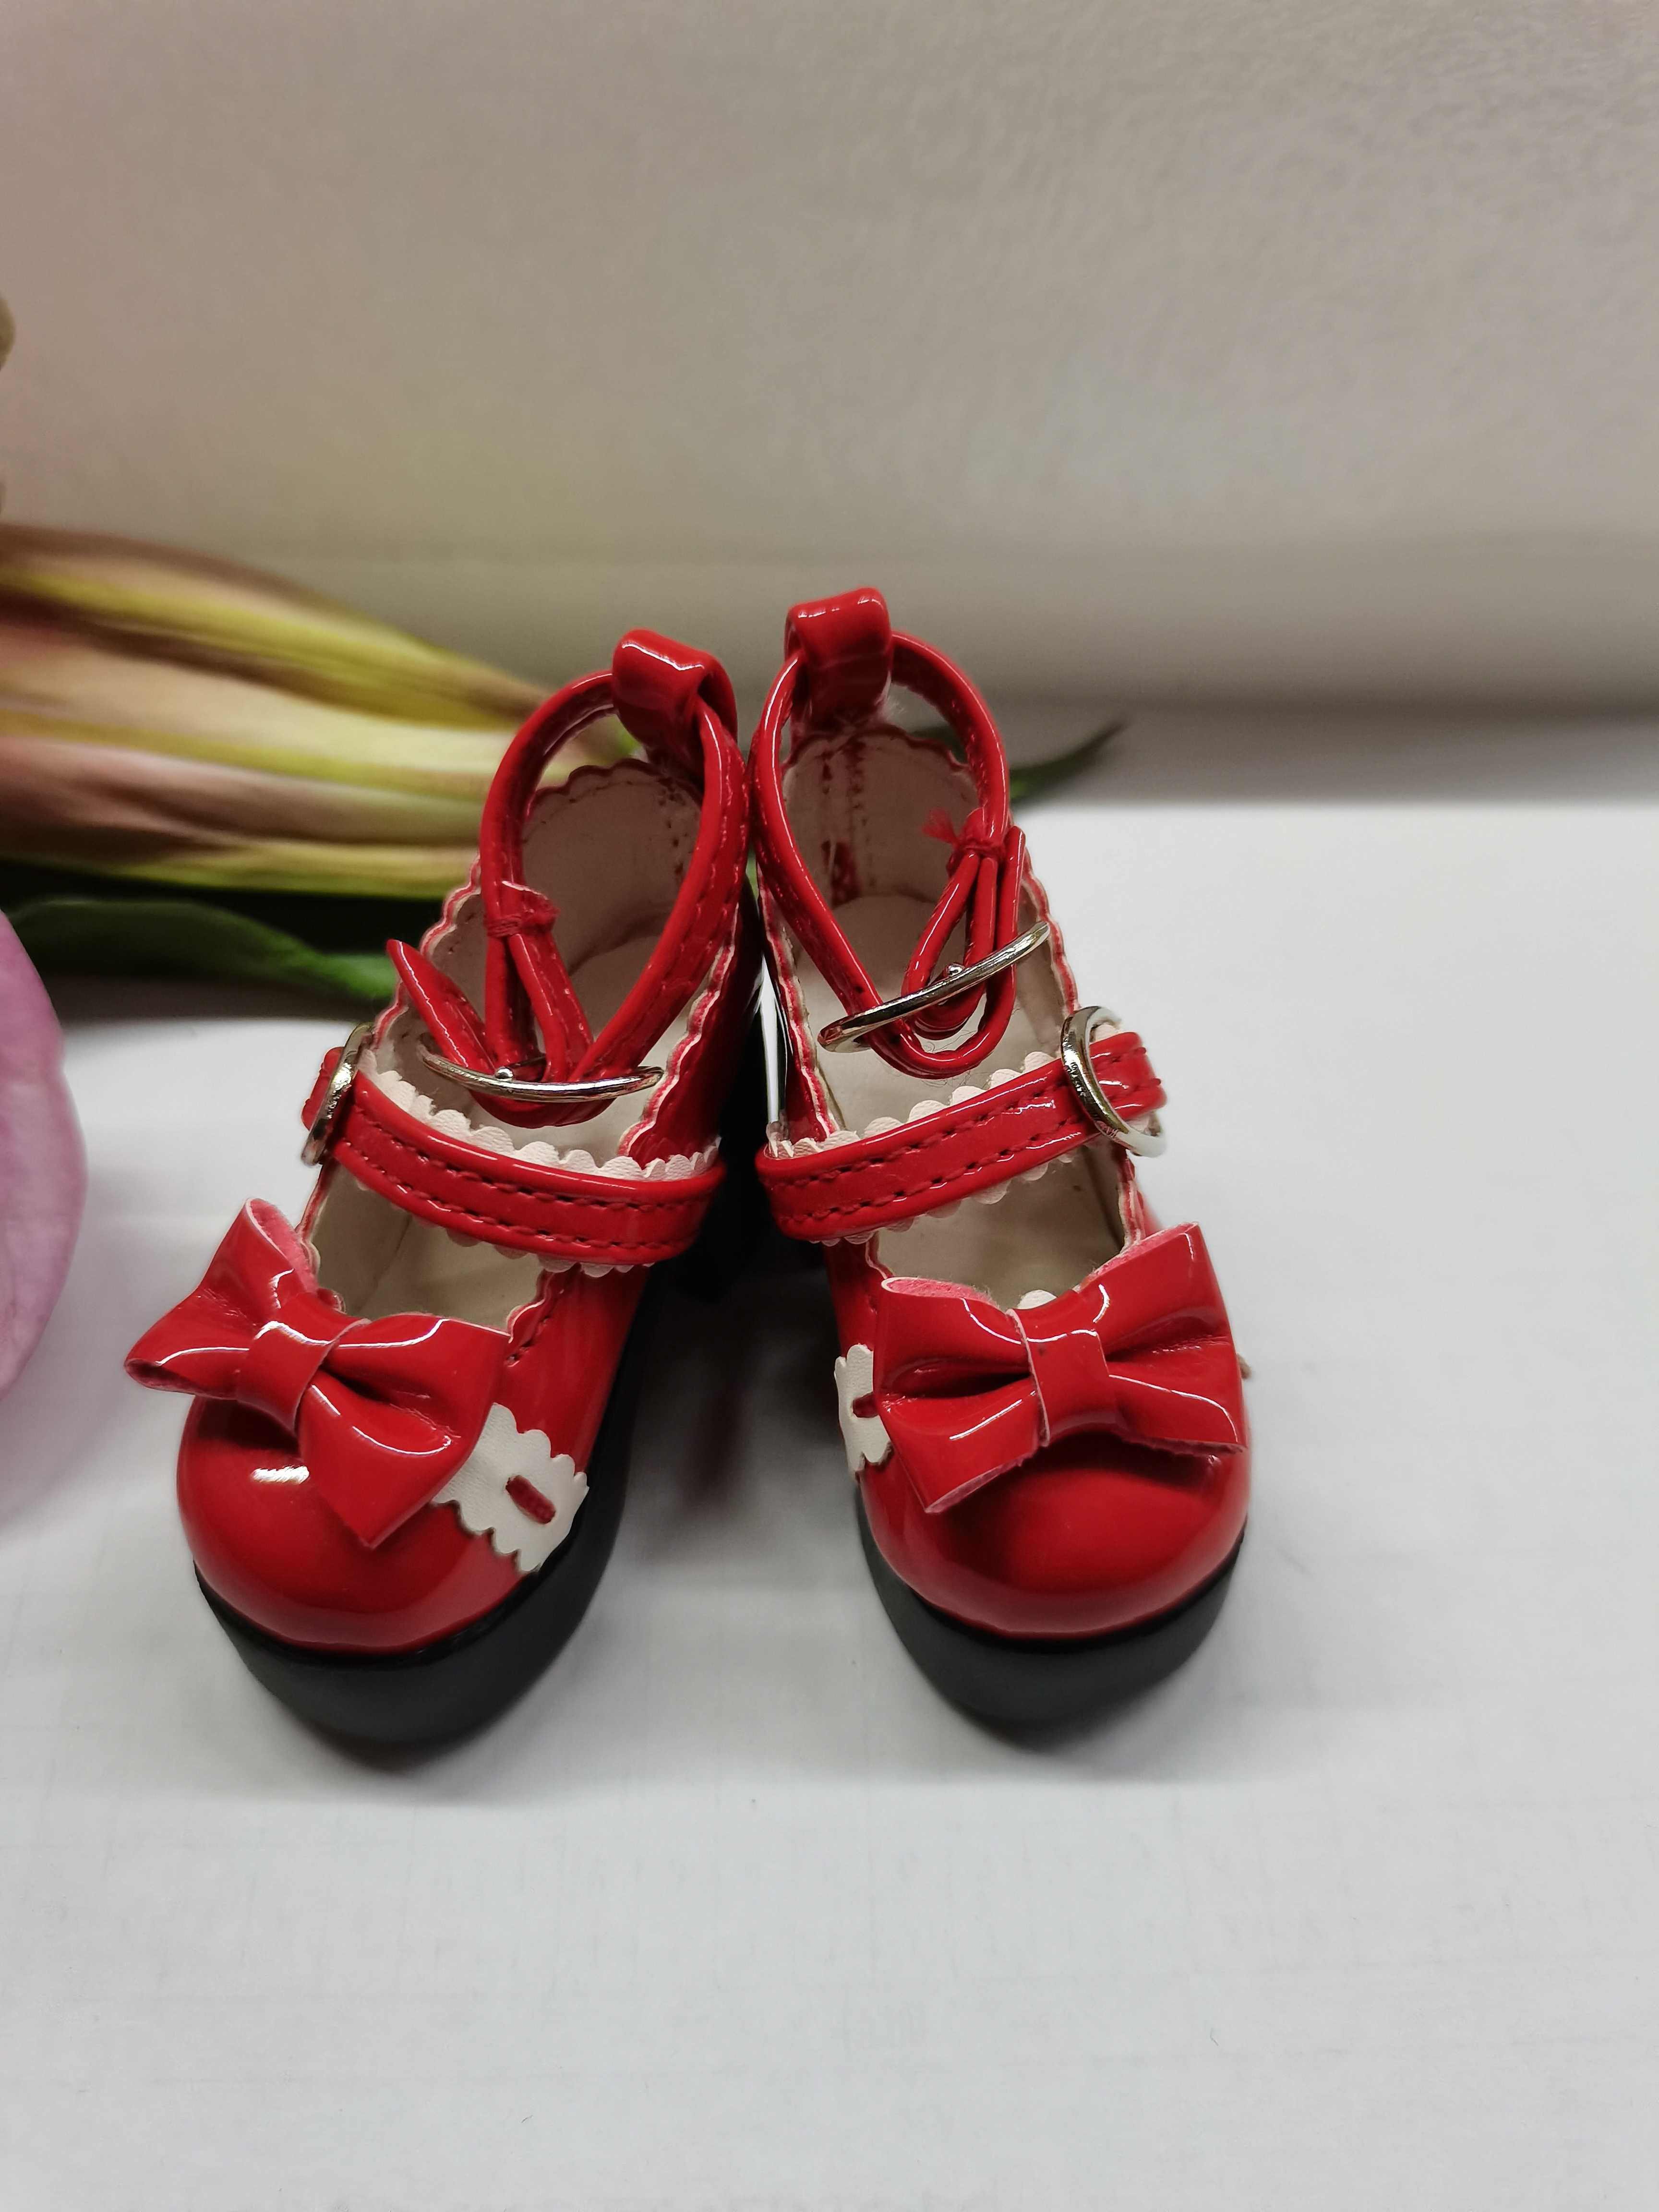 BJD female round head student shoes have 3 points, 4 points and 6 points